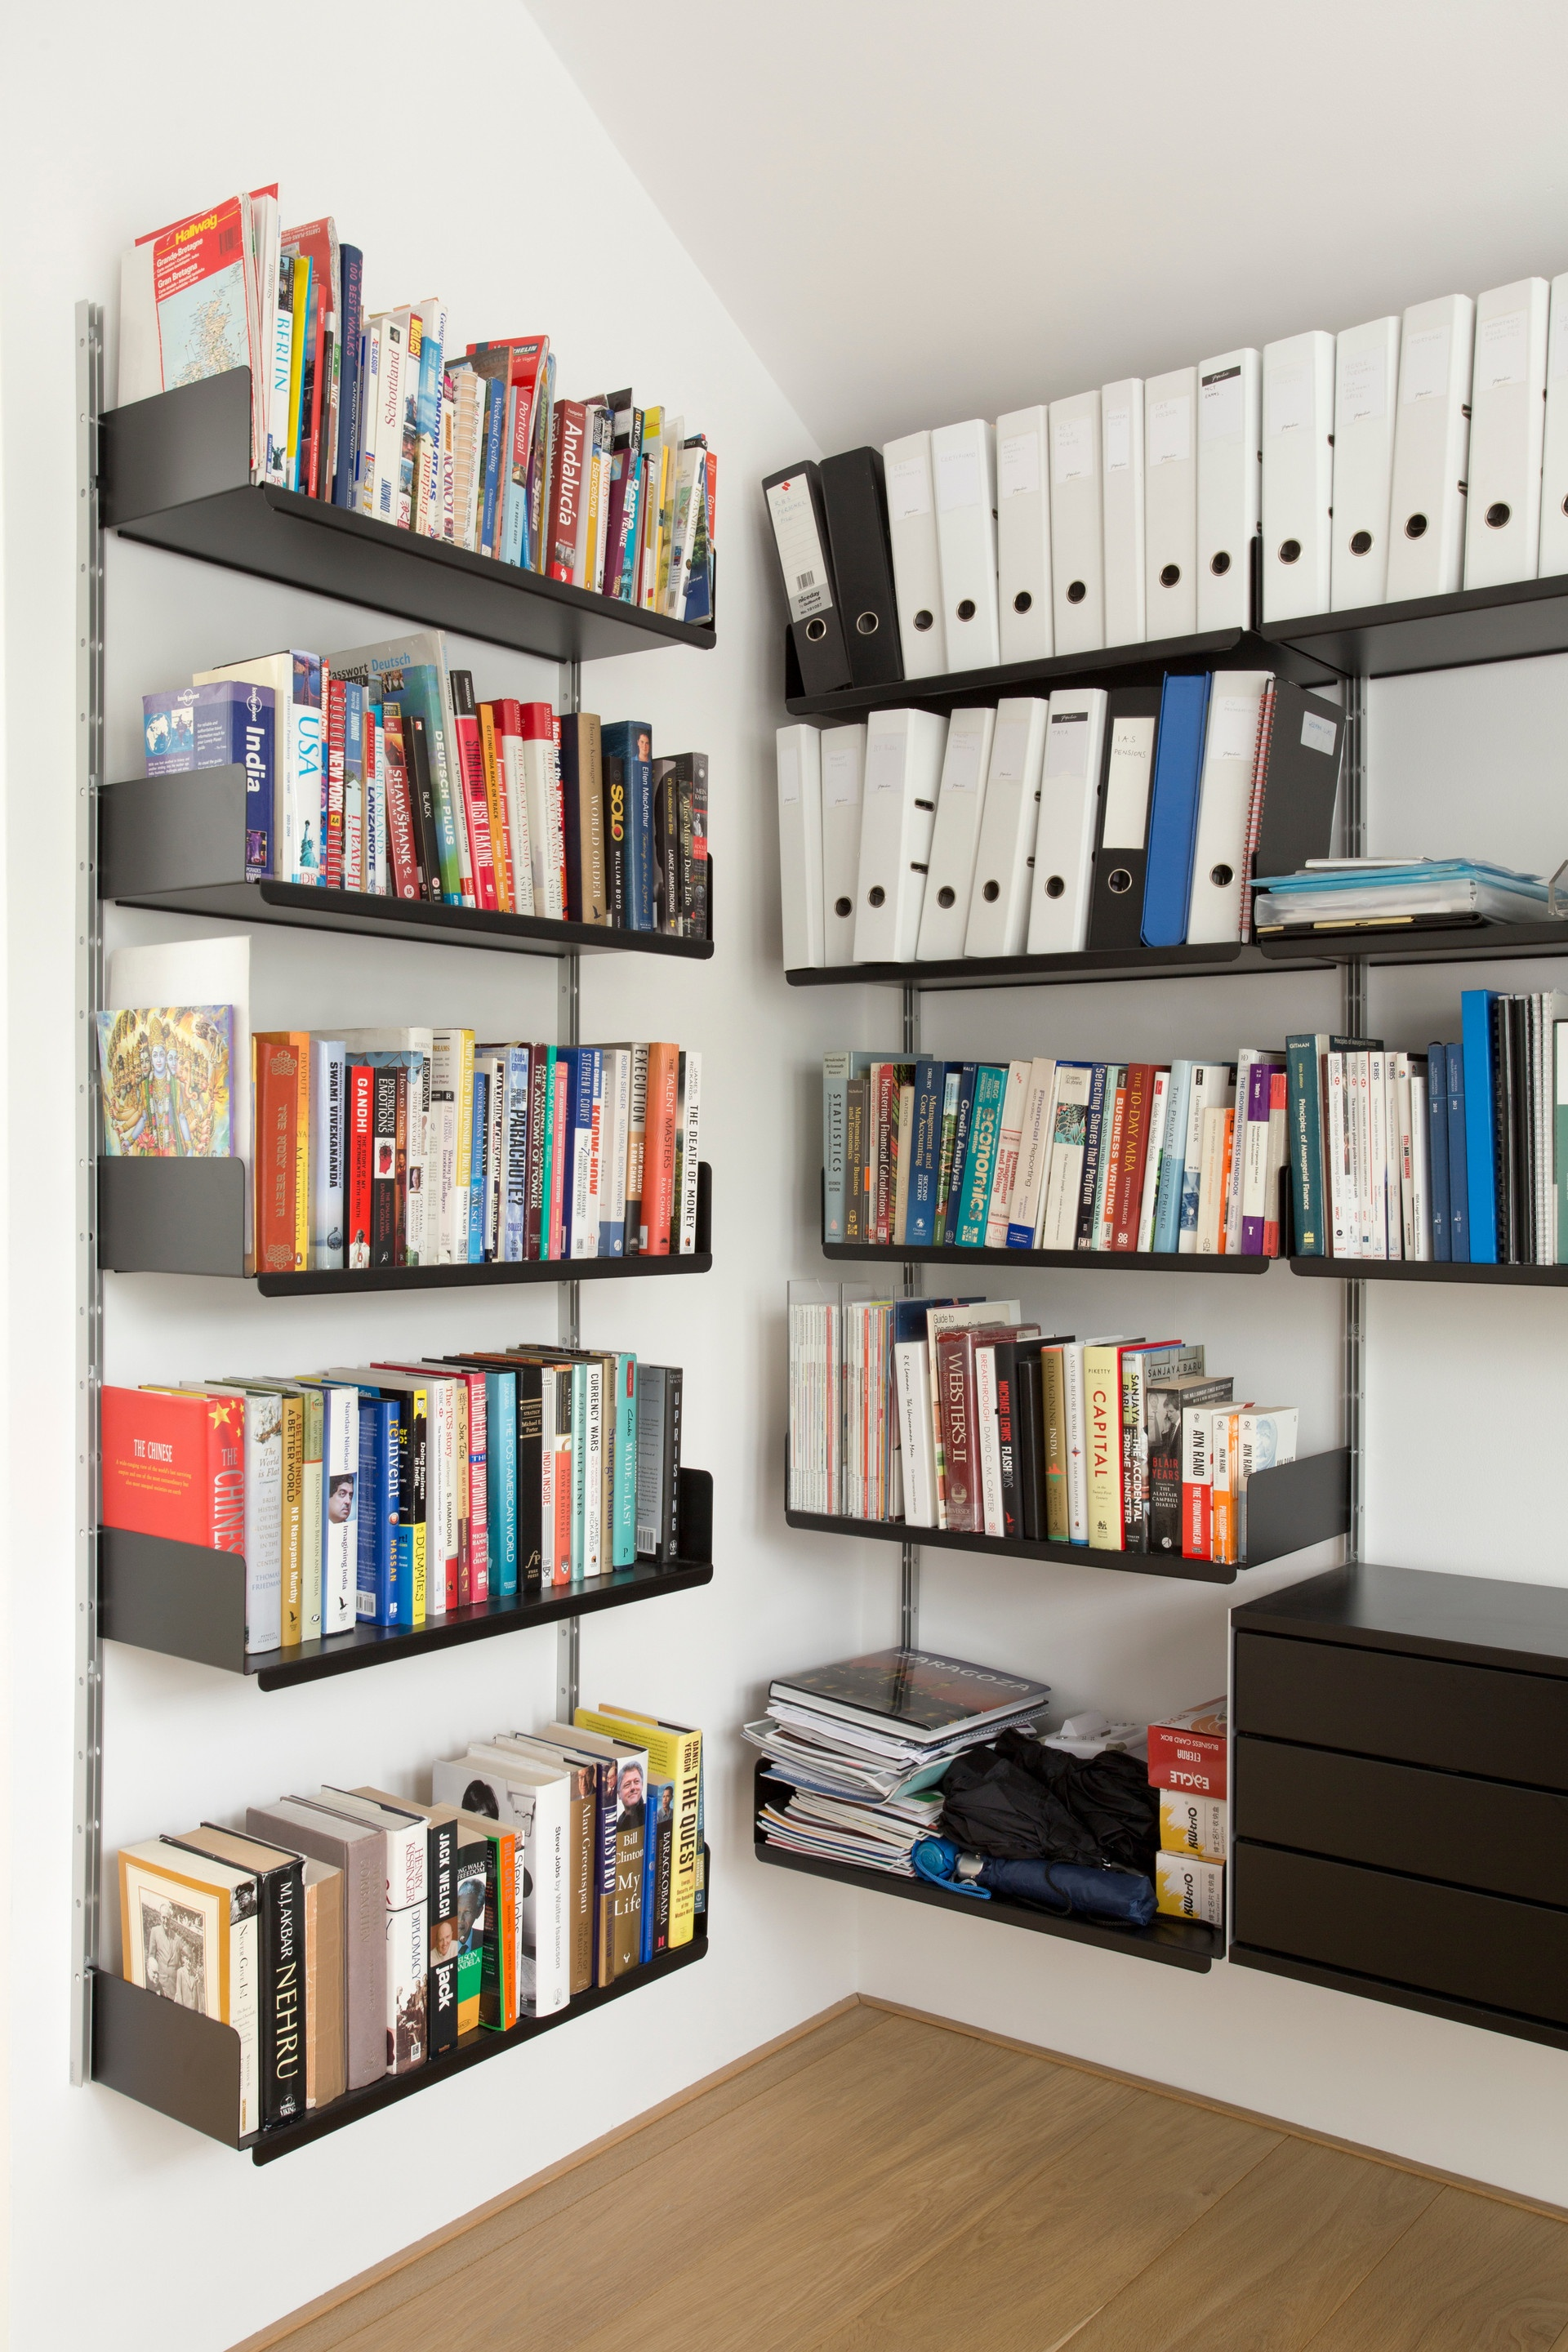 Corners are dealt with easily by the wall-mounted shelves